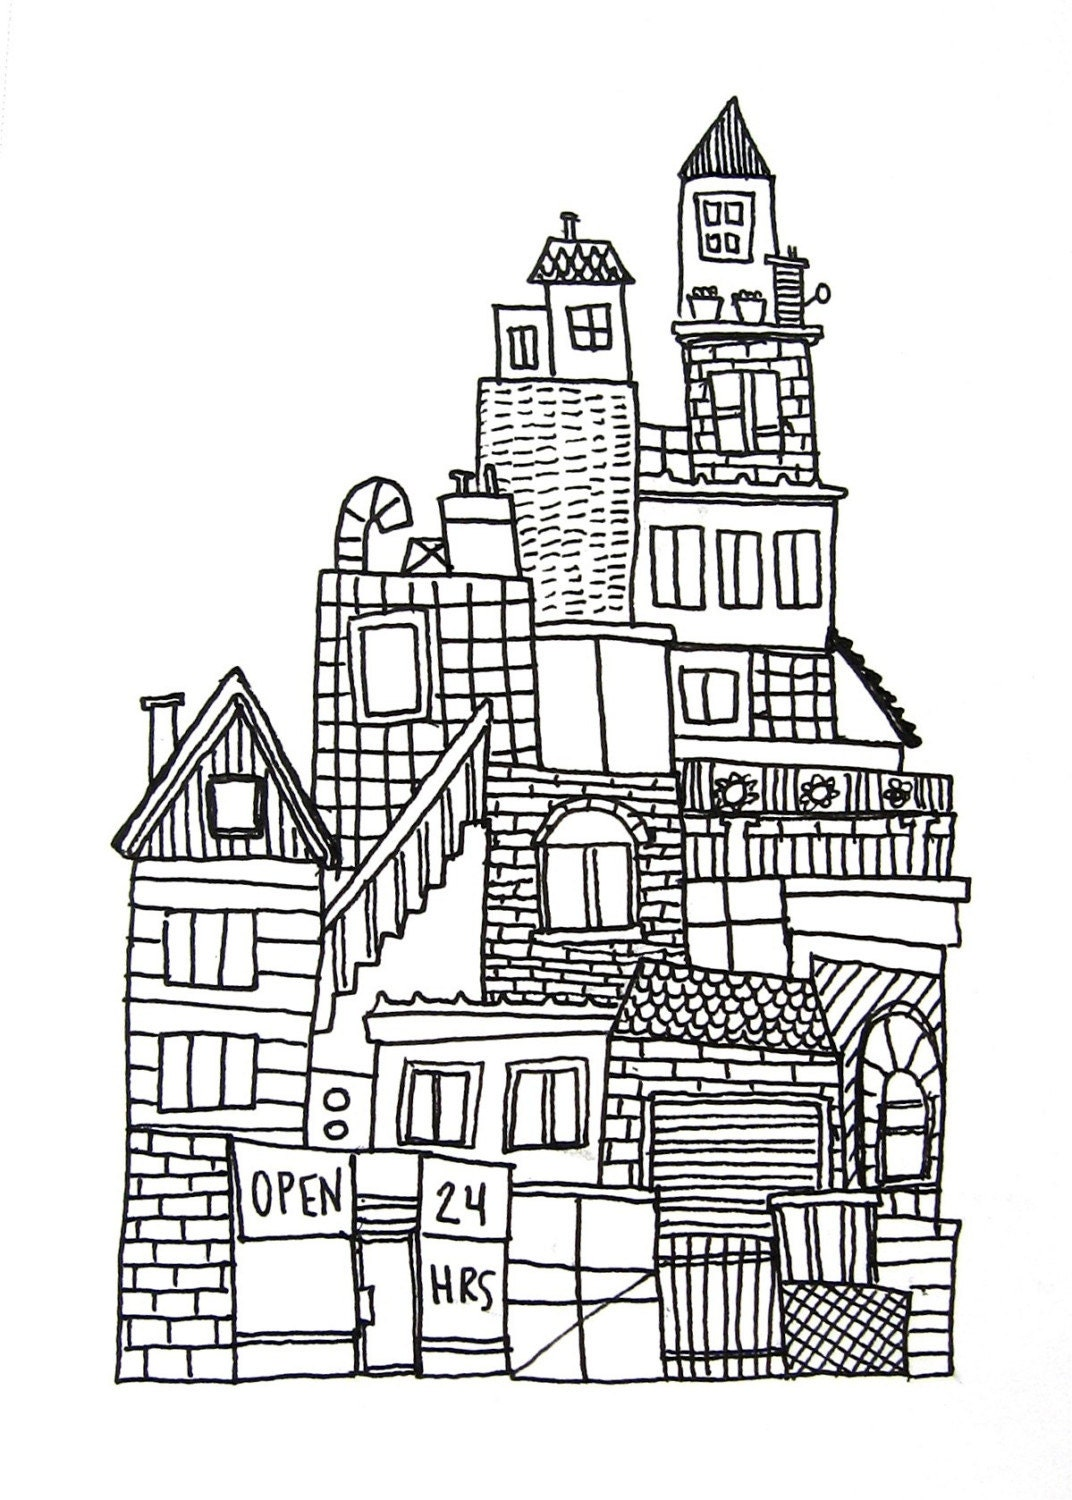 Simple Black And White Line Art : Original ink drawing on paper black and white urban city